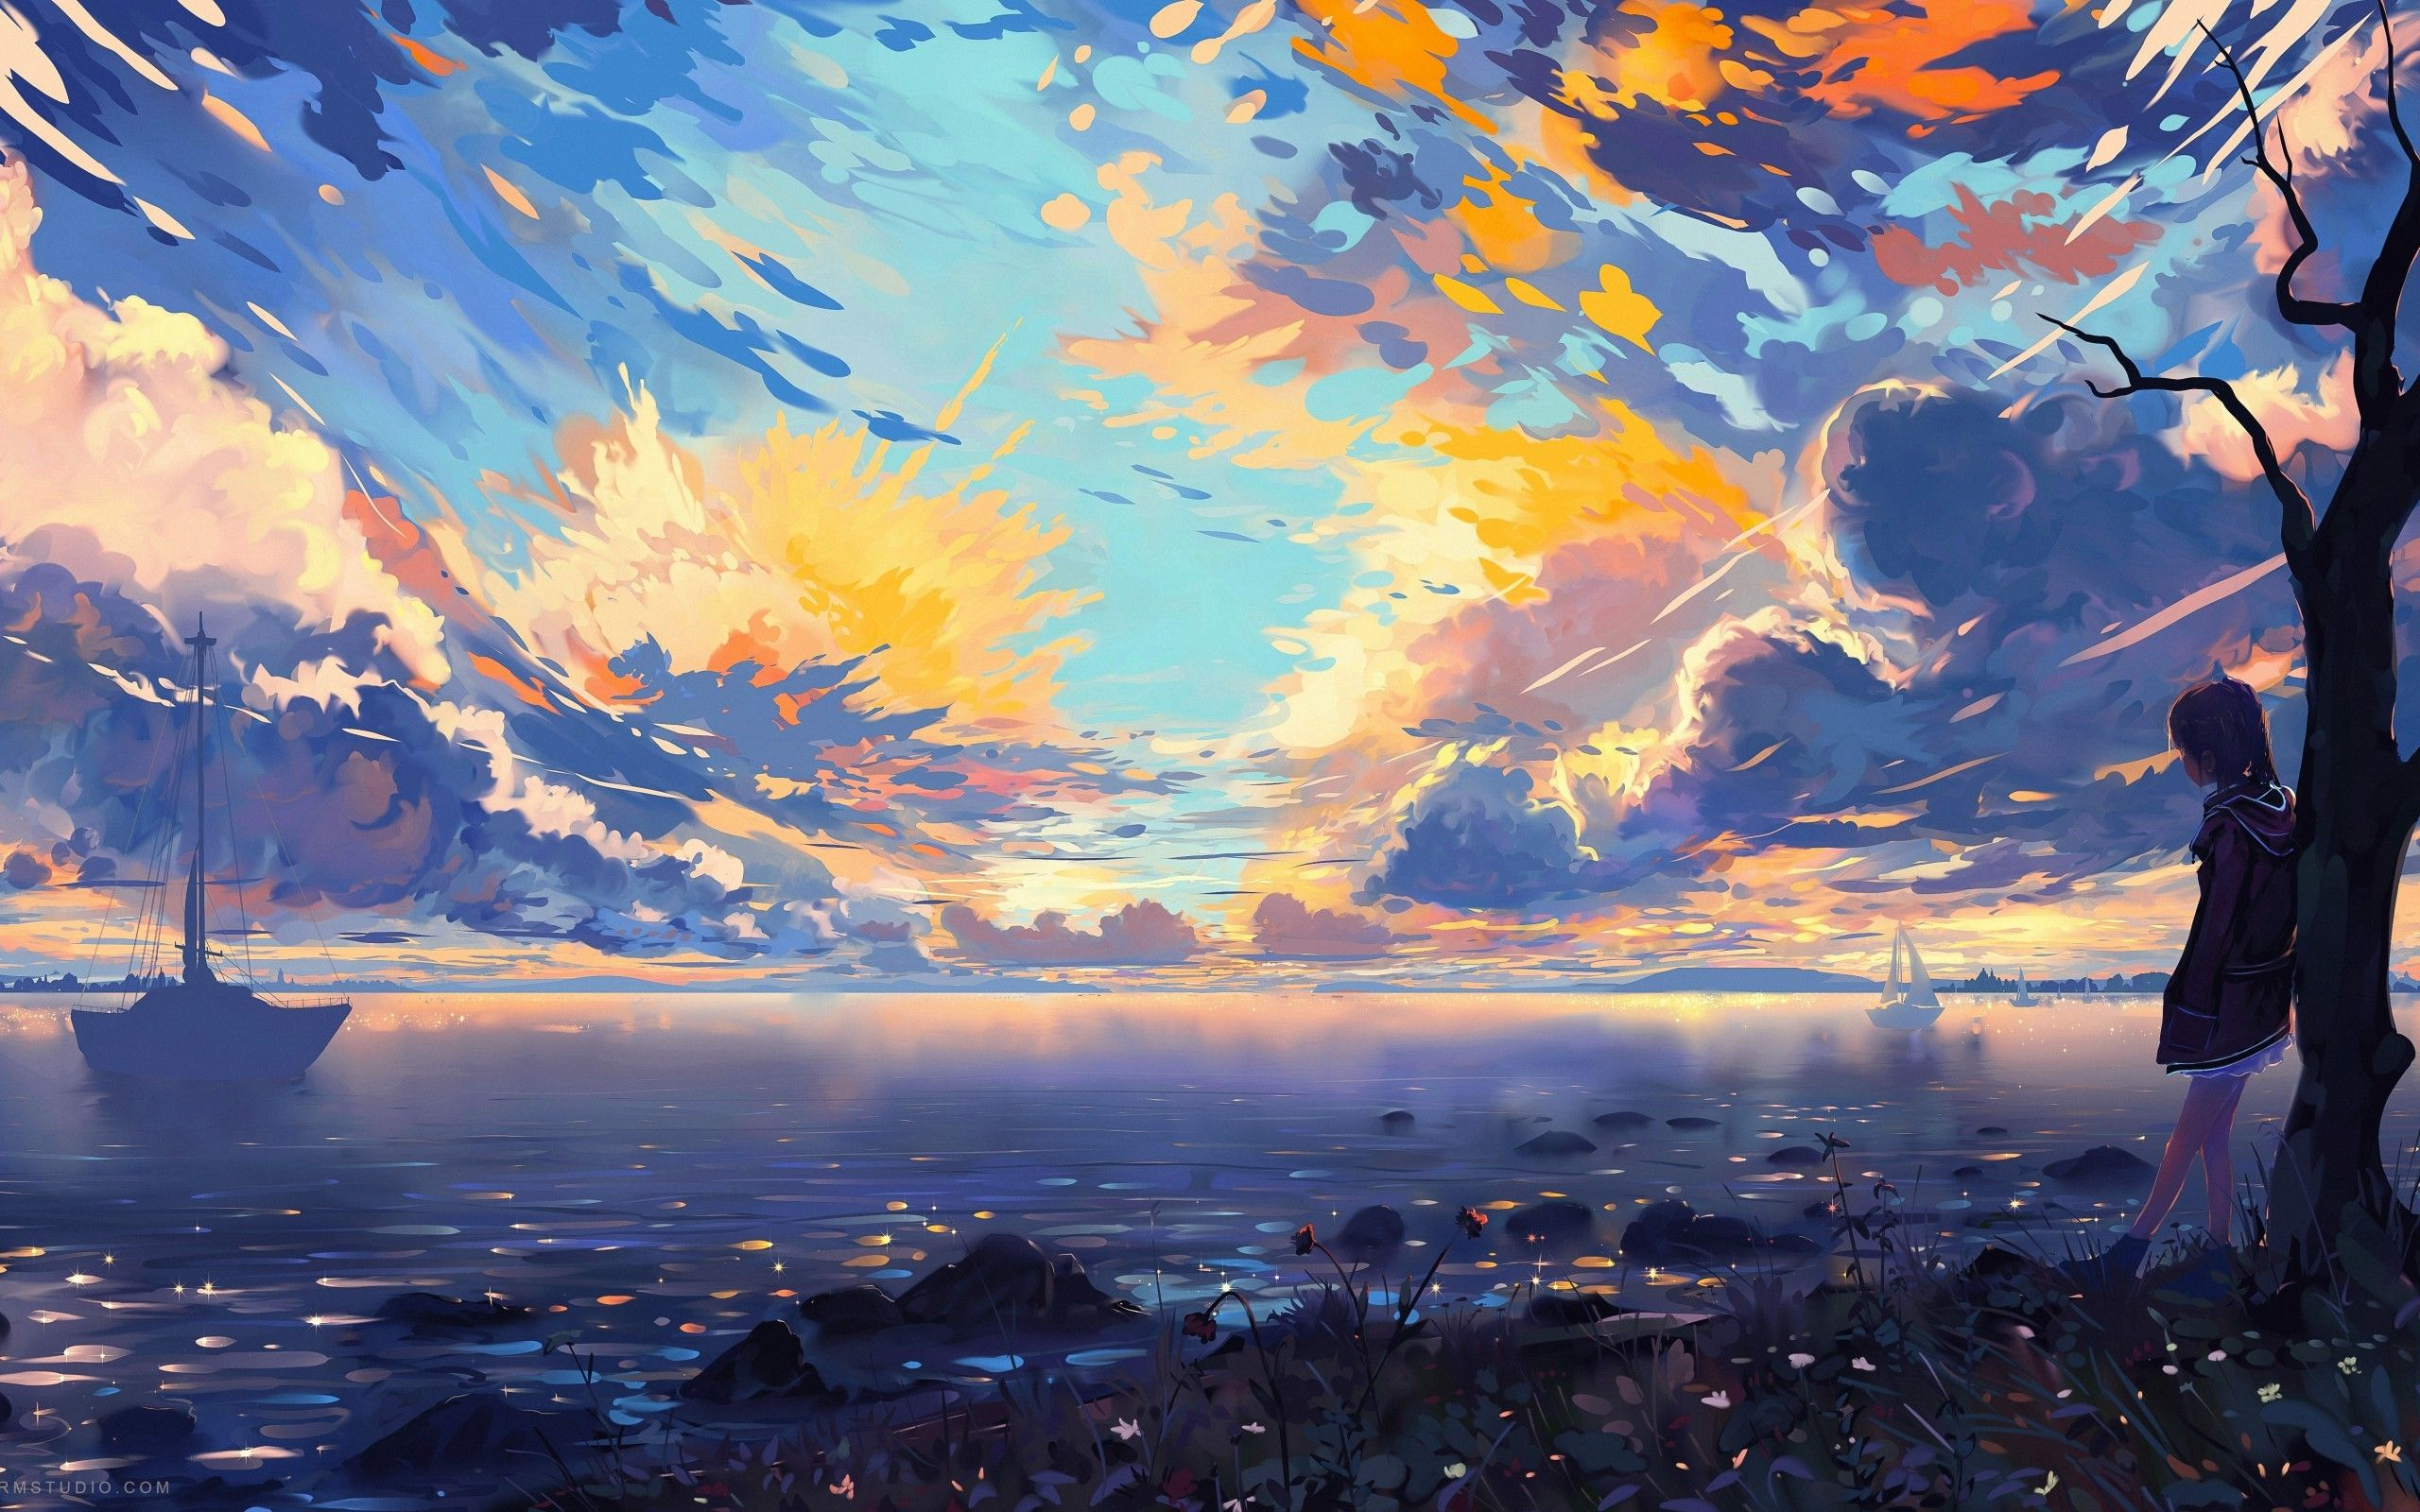 Colorful Anime Scenery Wallpapers Top Free Colorful Anime Scenery Backgrounds Wallpaperaccess